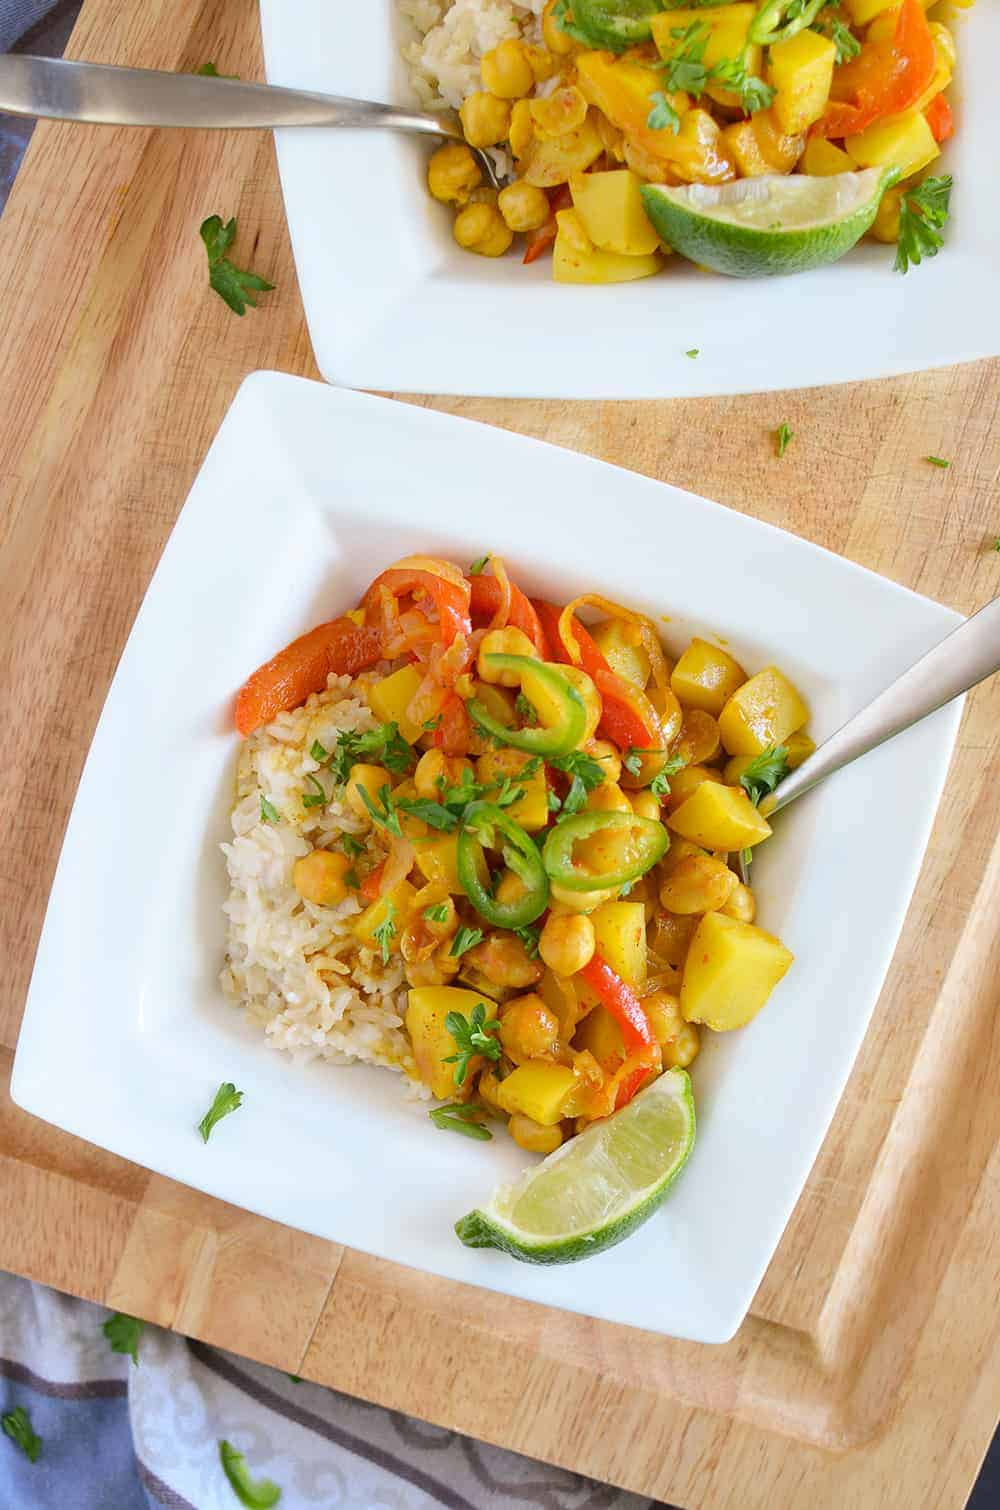 Yellow Curry Bowls! These vegan and gluten free curry bowls are a MUST-MAKE! Potatoes, chickpeas & peppers simmered in a coconut curry sauce. | www.delishknowledge.com